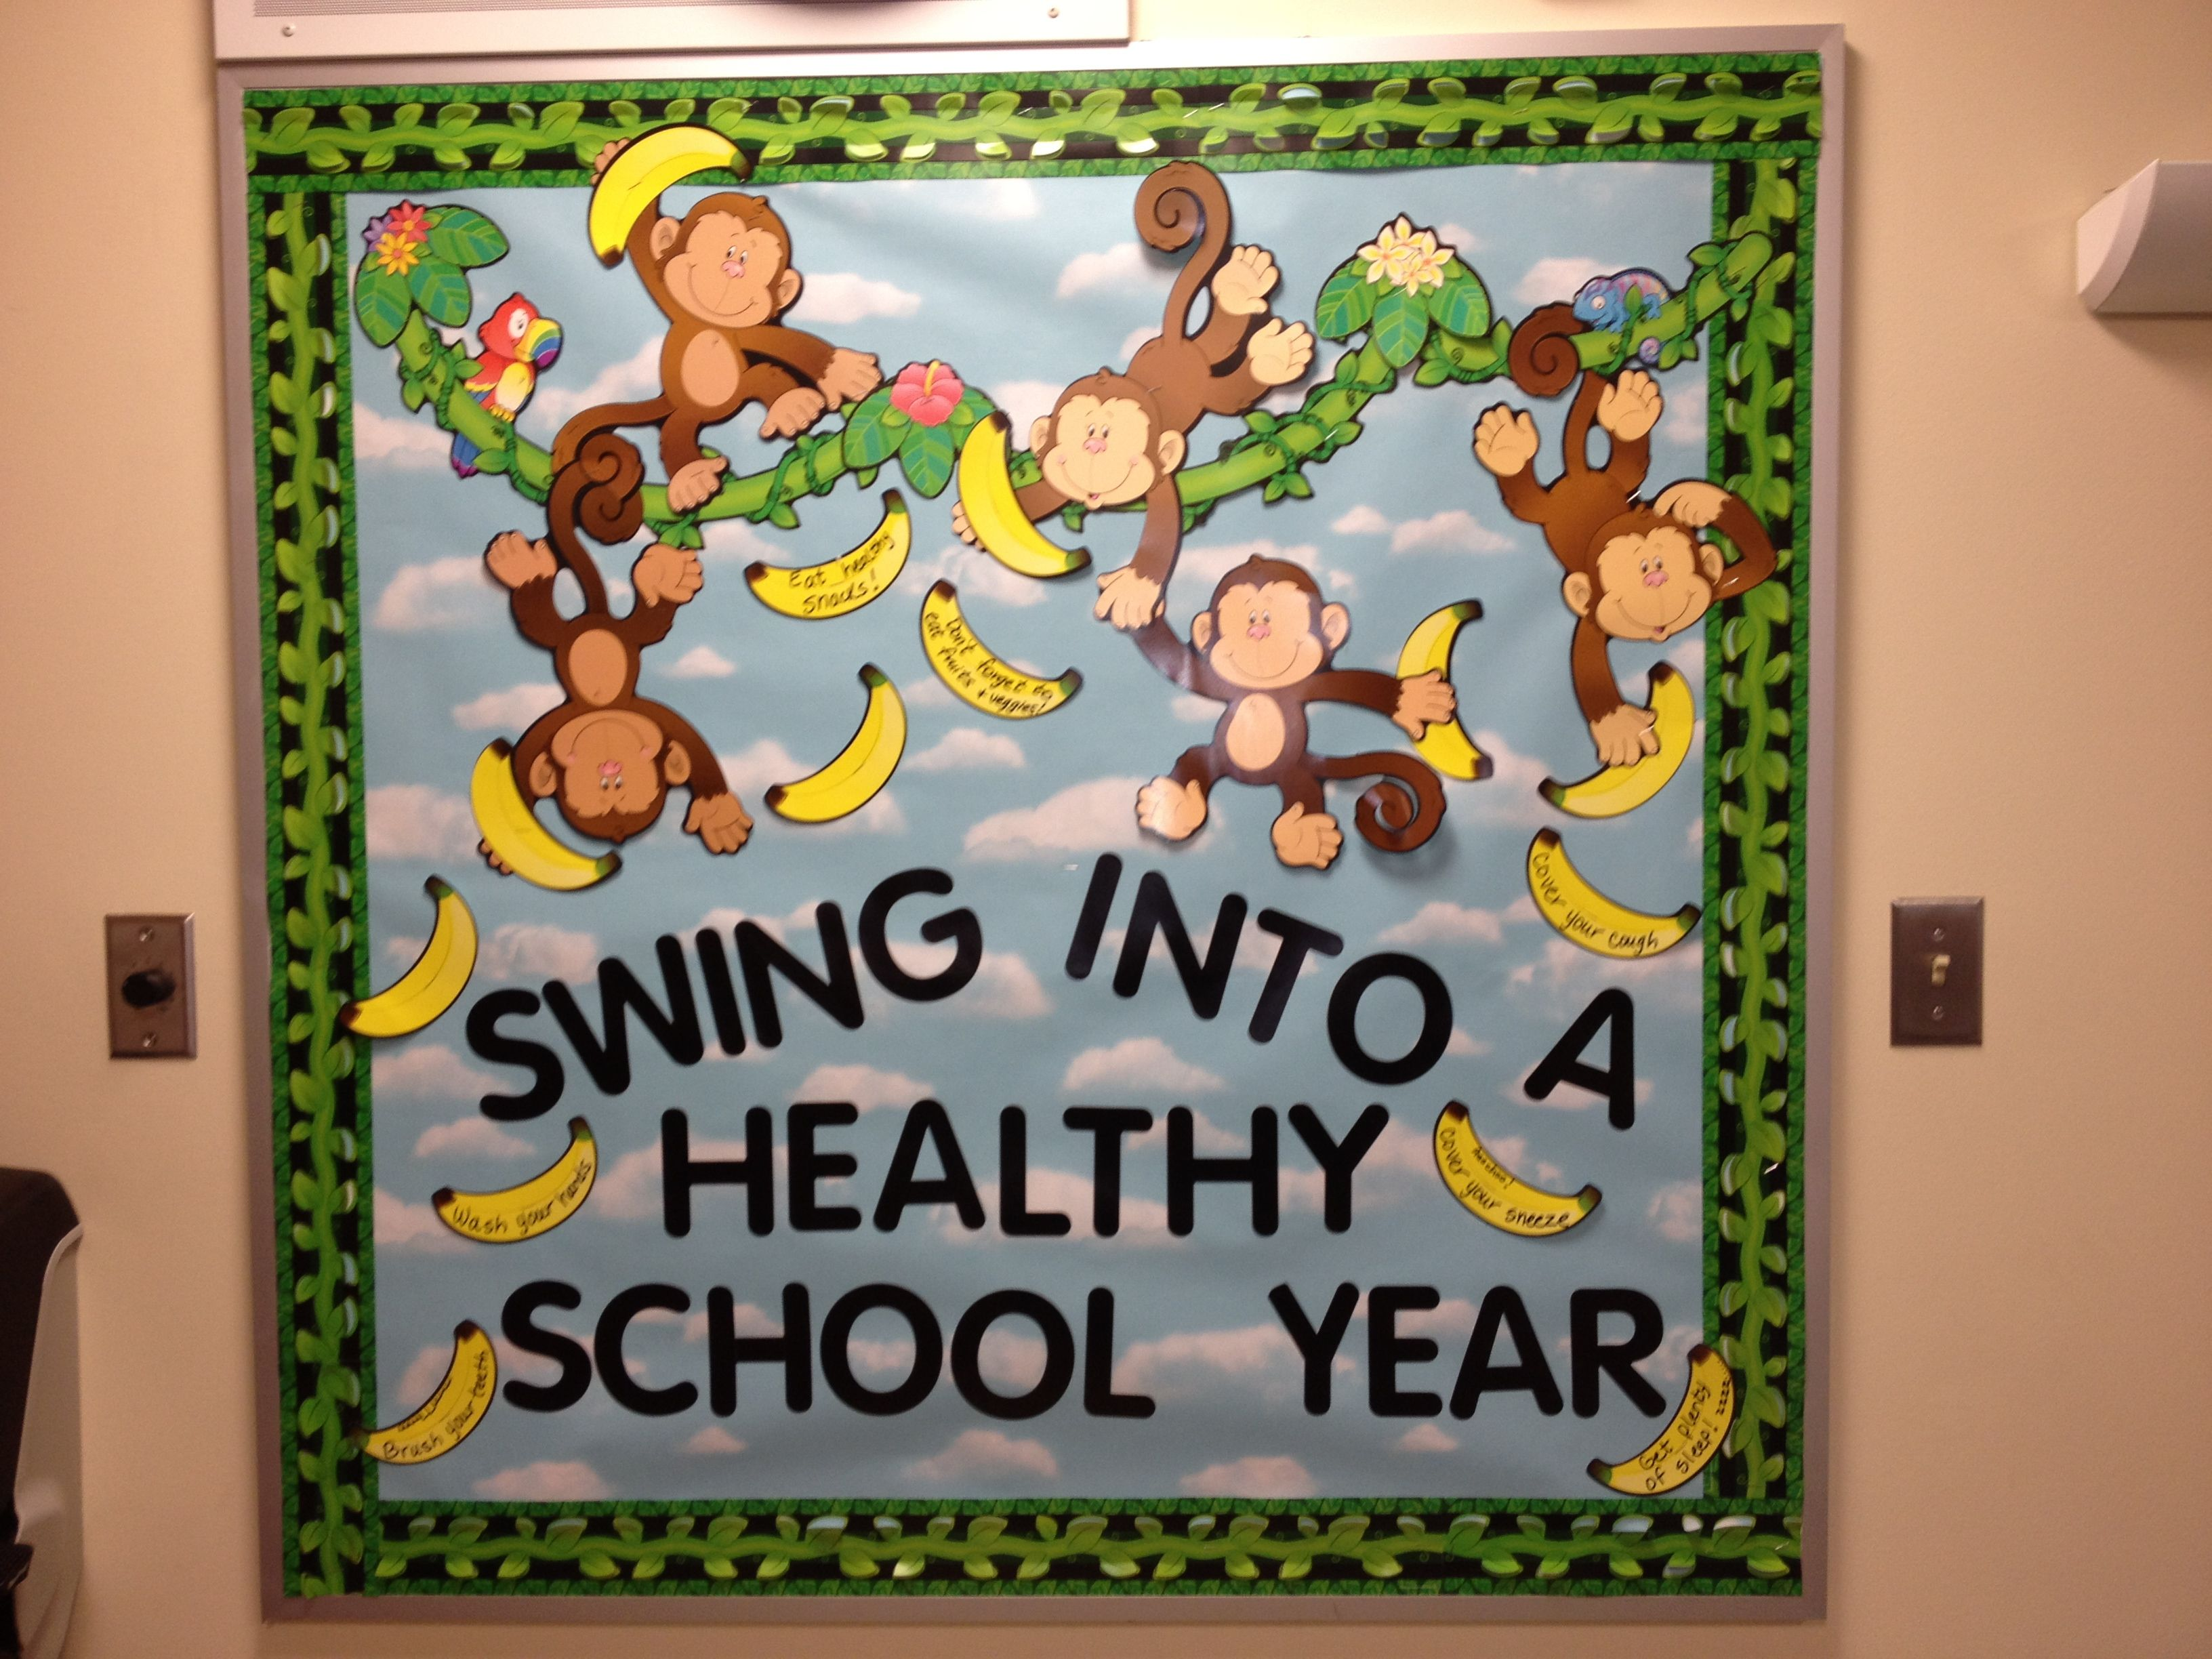 Go green vegetable bulletin board idea myclassroomideas com - 17 Best Ideas About Nurse Bulletin Board On Pinterest Classroom 3264x2448 Jpeg